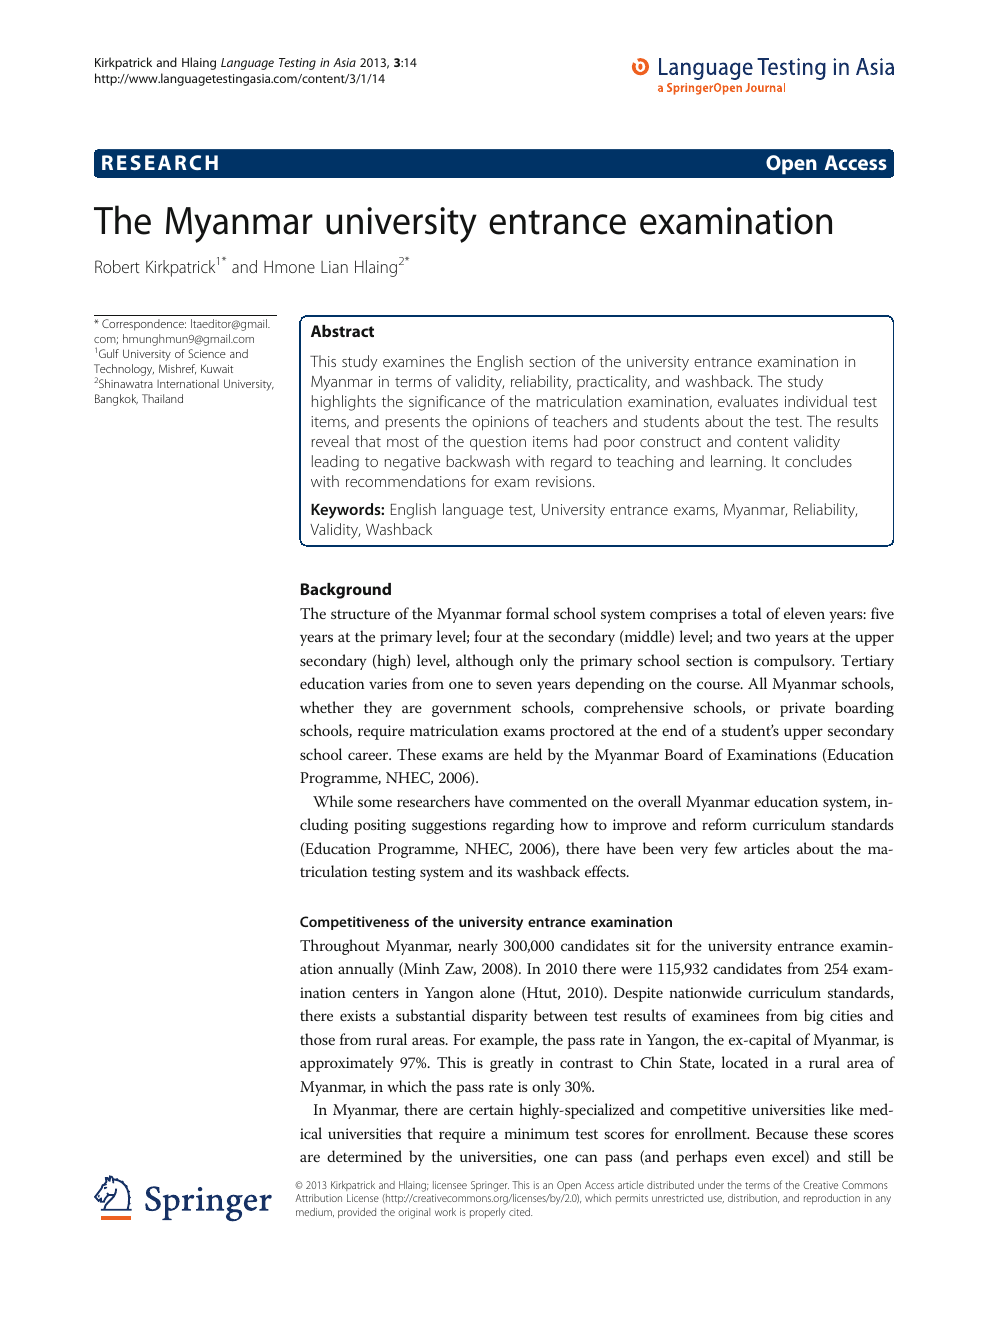 The Myanmar university entrance examination – topic of research